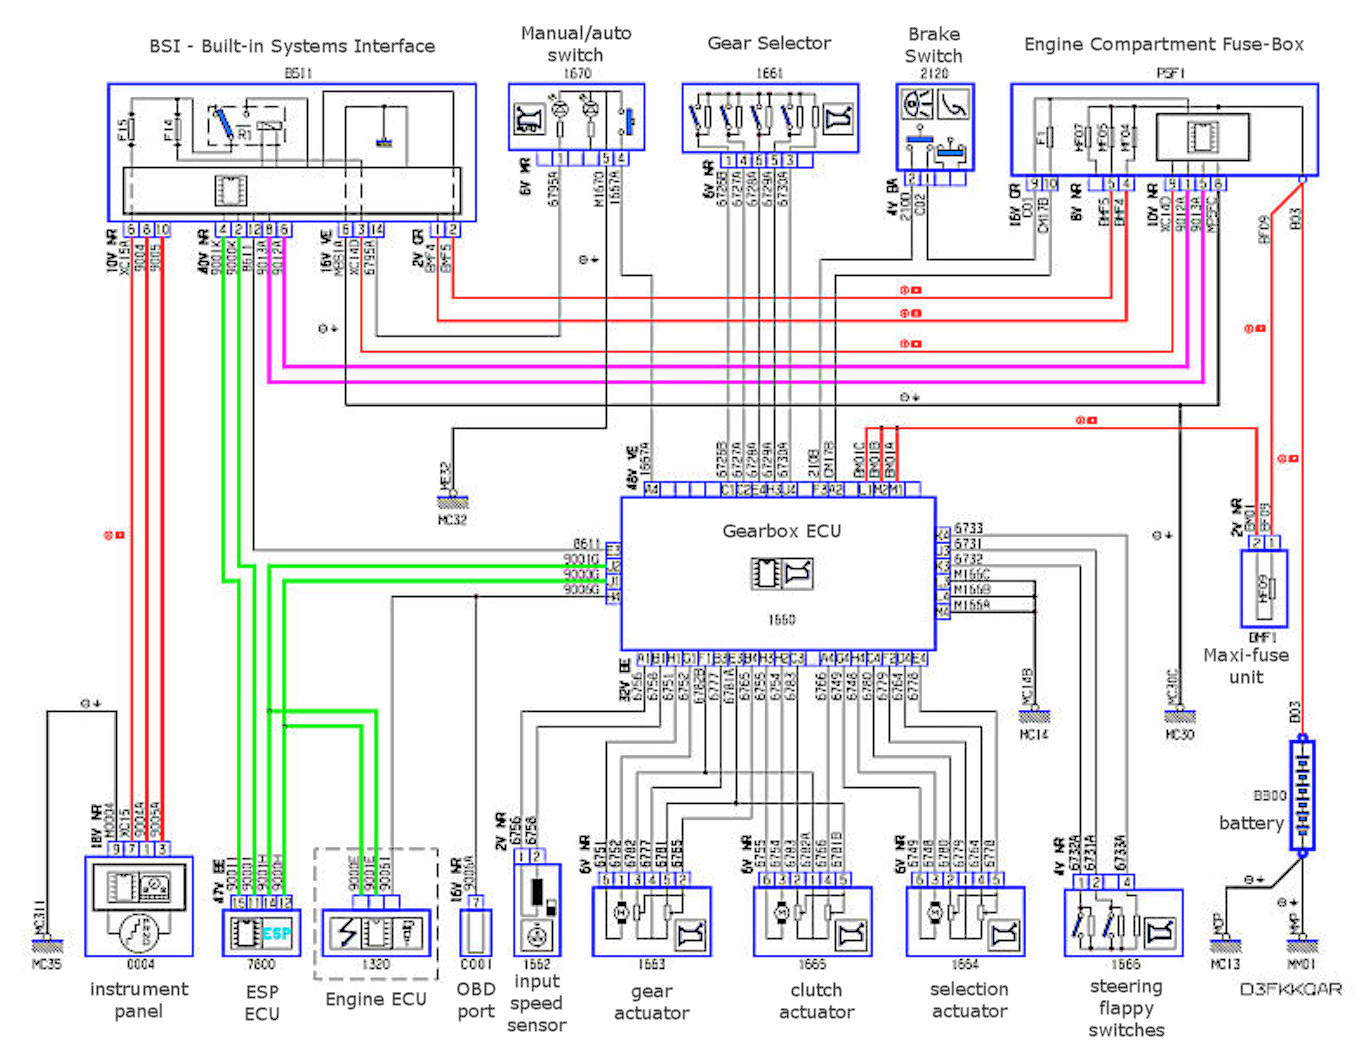 5gearboxecu peugeot boxer wiring diagram pdf peugeot wiring diagrams for diy peugeot 206 bsi wiring diagram at mifinder.co